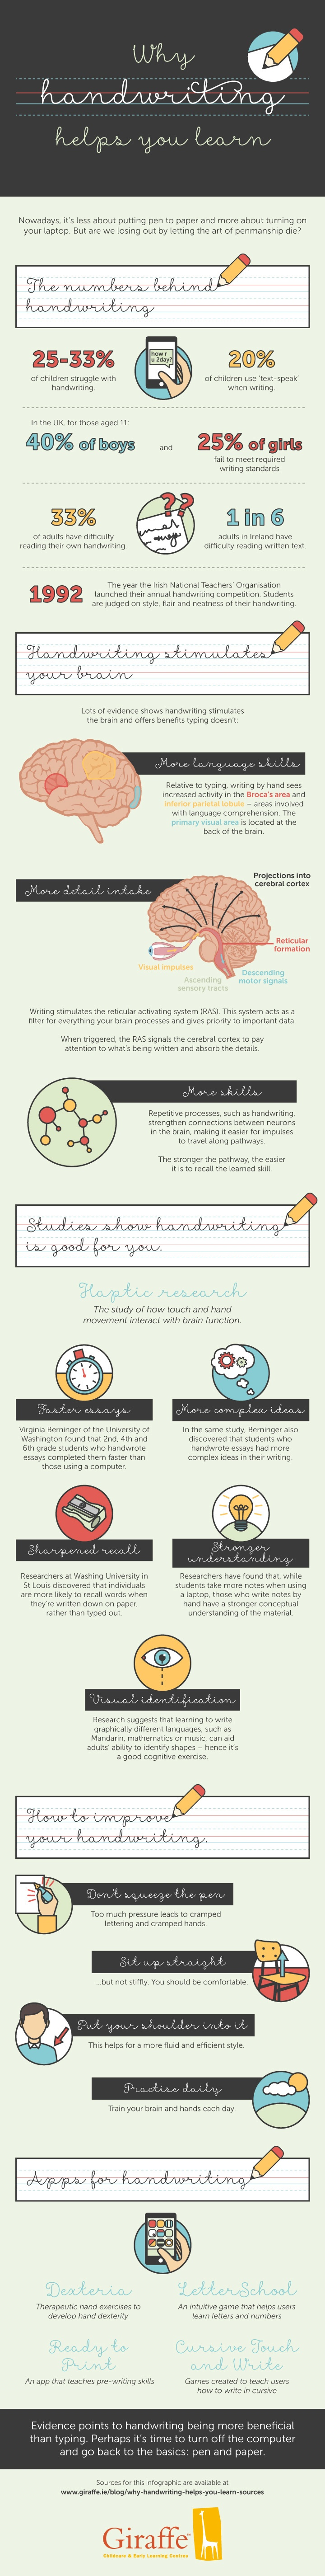 How Handwriting Enhances Learning Infographic